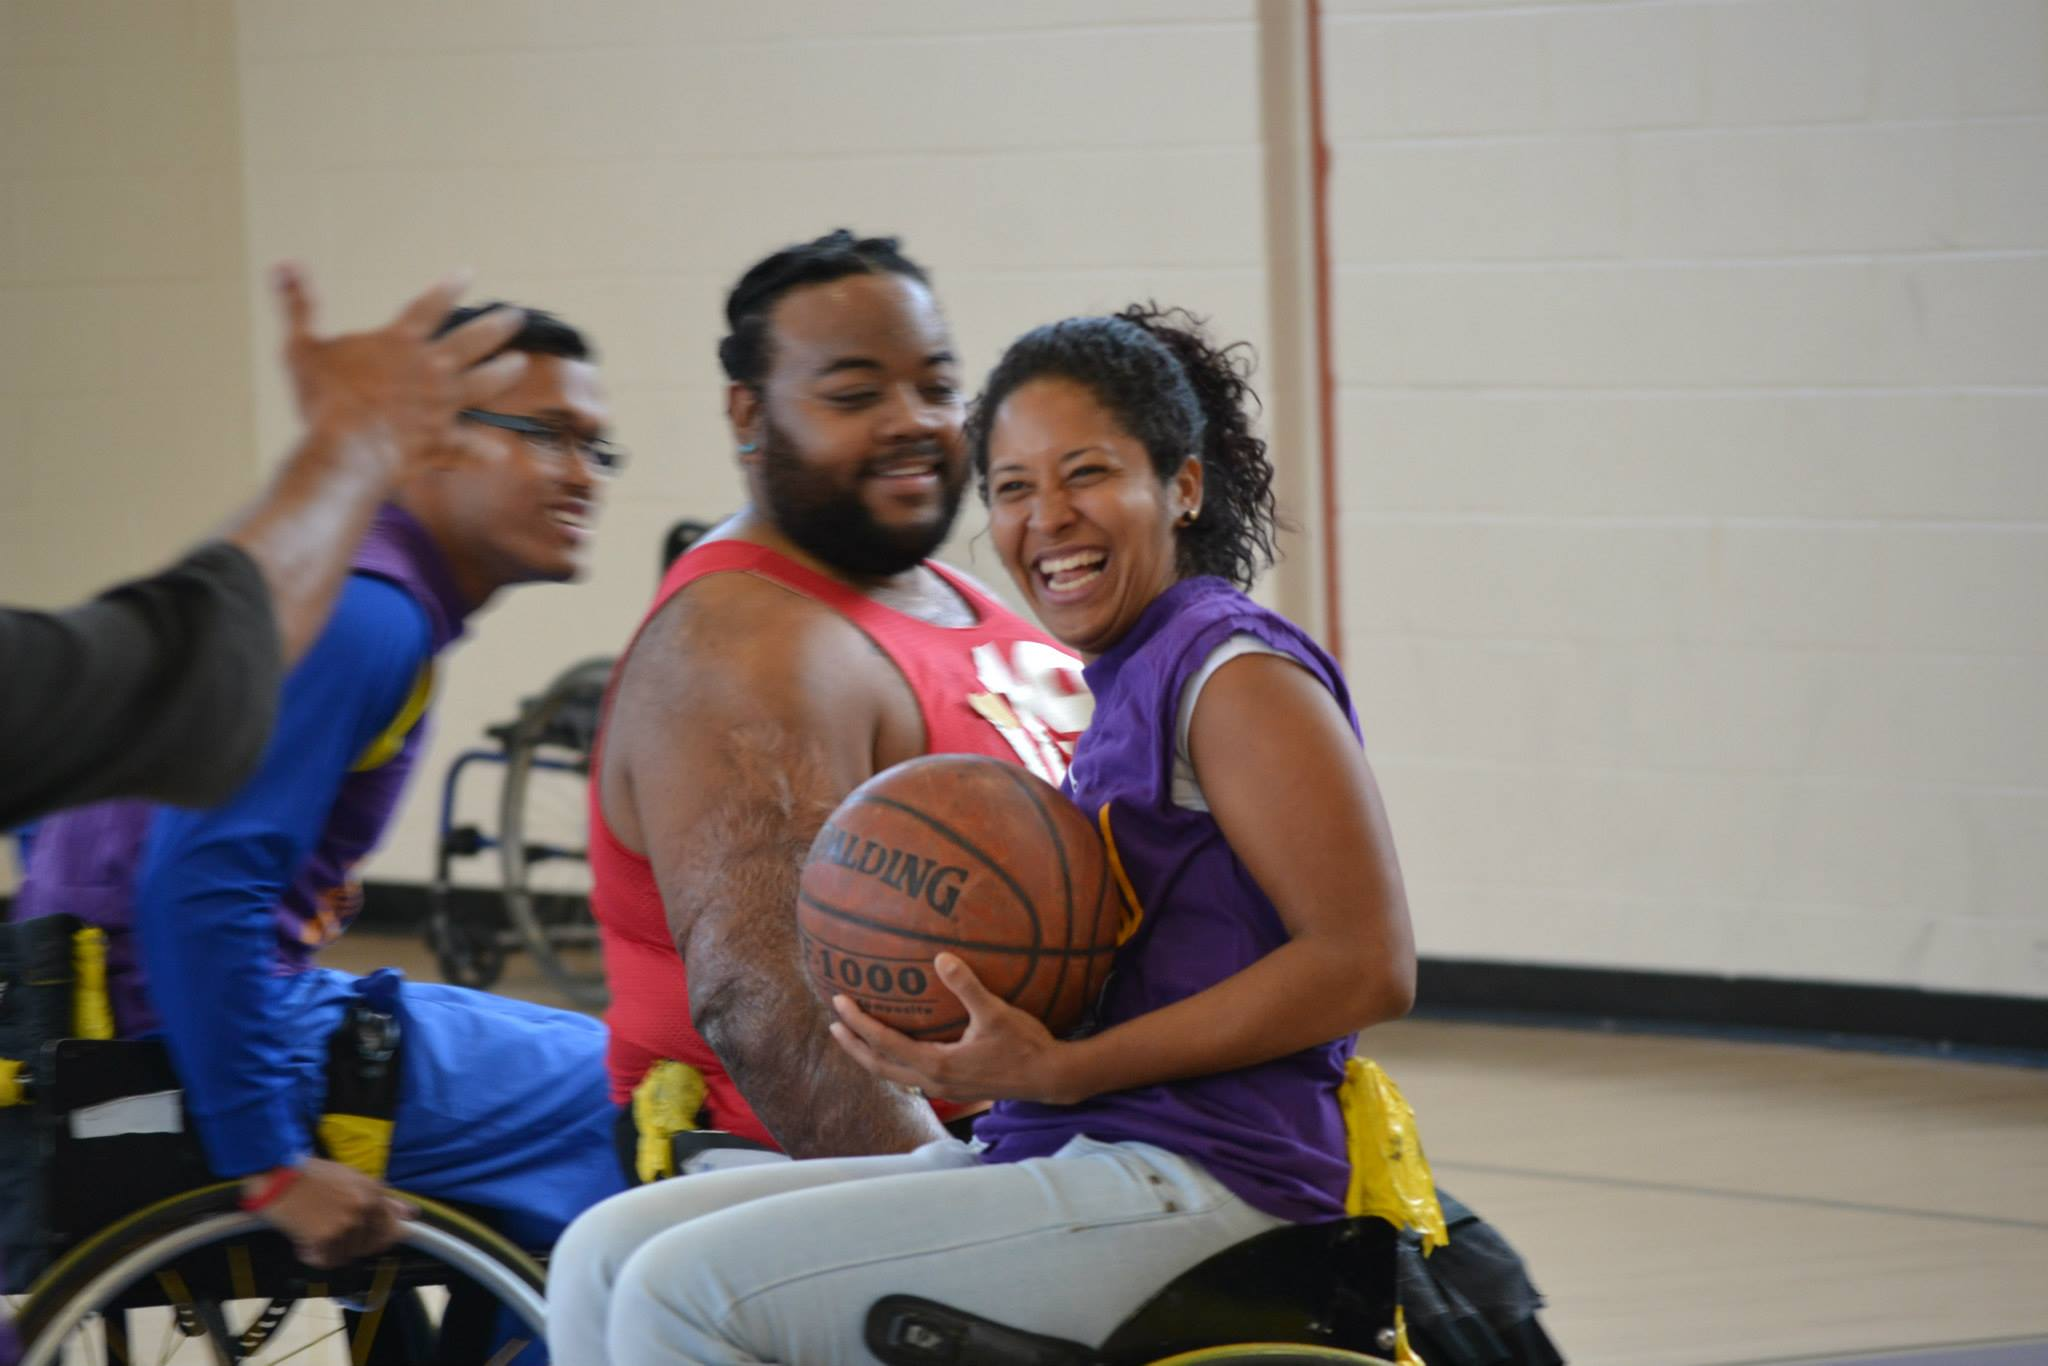 The Venezuelan Deaf Educators also tried their hand at another adaptive sport: wheelchair basketball